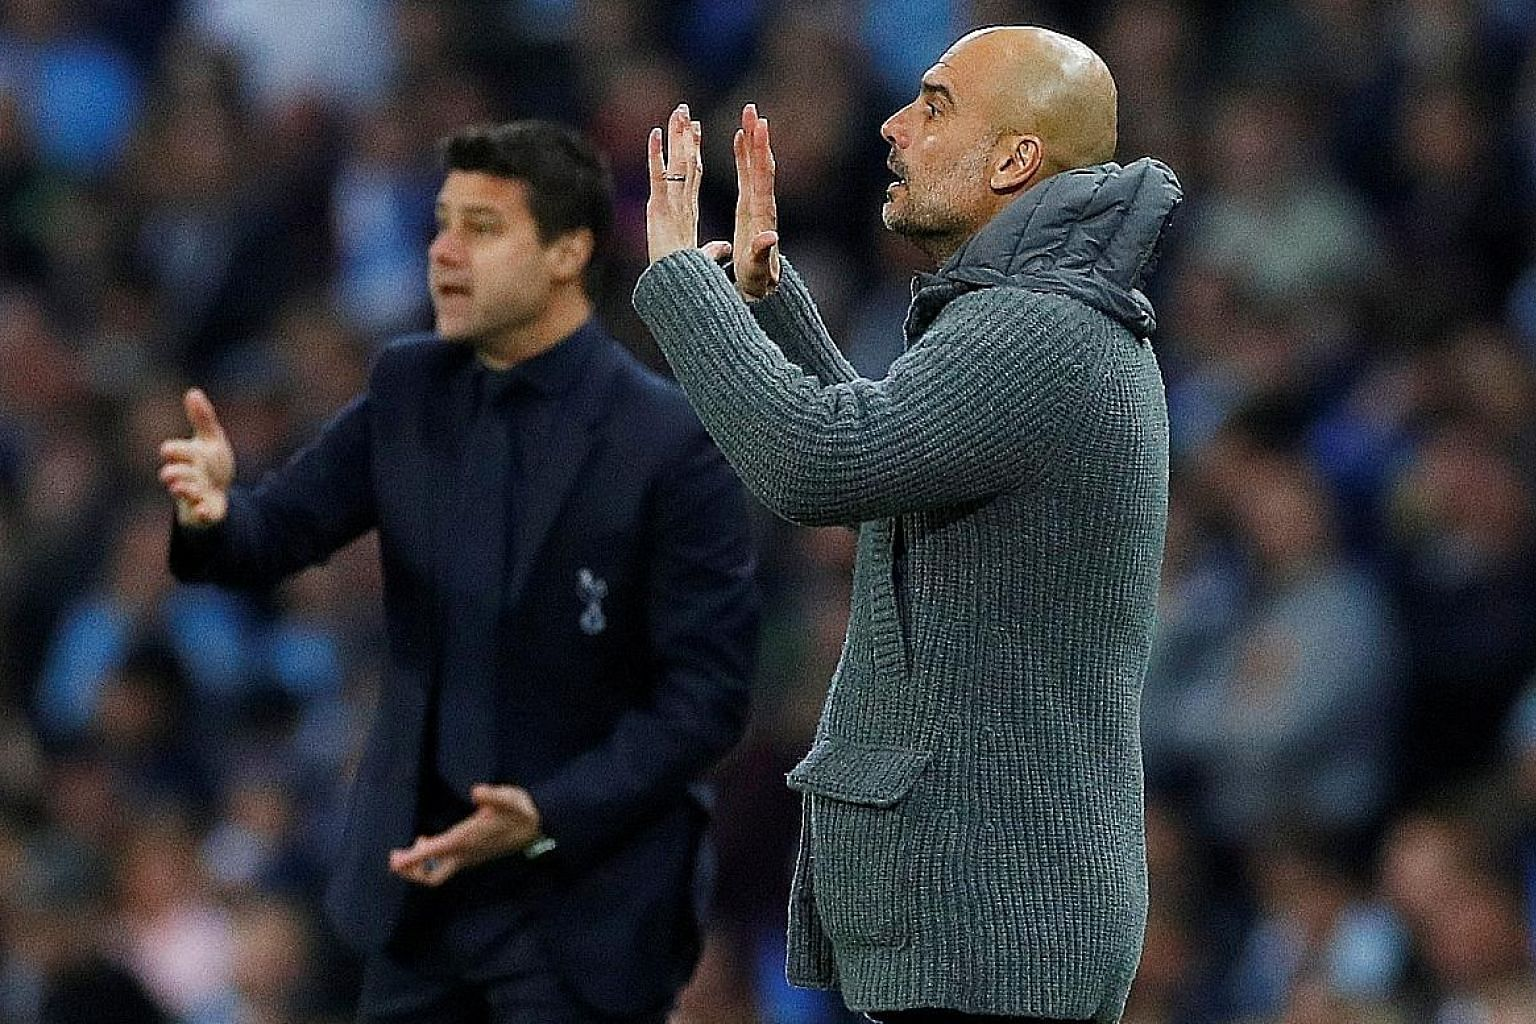 Manchester City manager Pep Guardiola expects today's Premier League clash against Tottenham to be as intense as the Champions League quarter-final second leg on Wednesday but he will not change his approach.